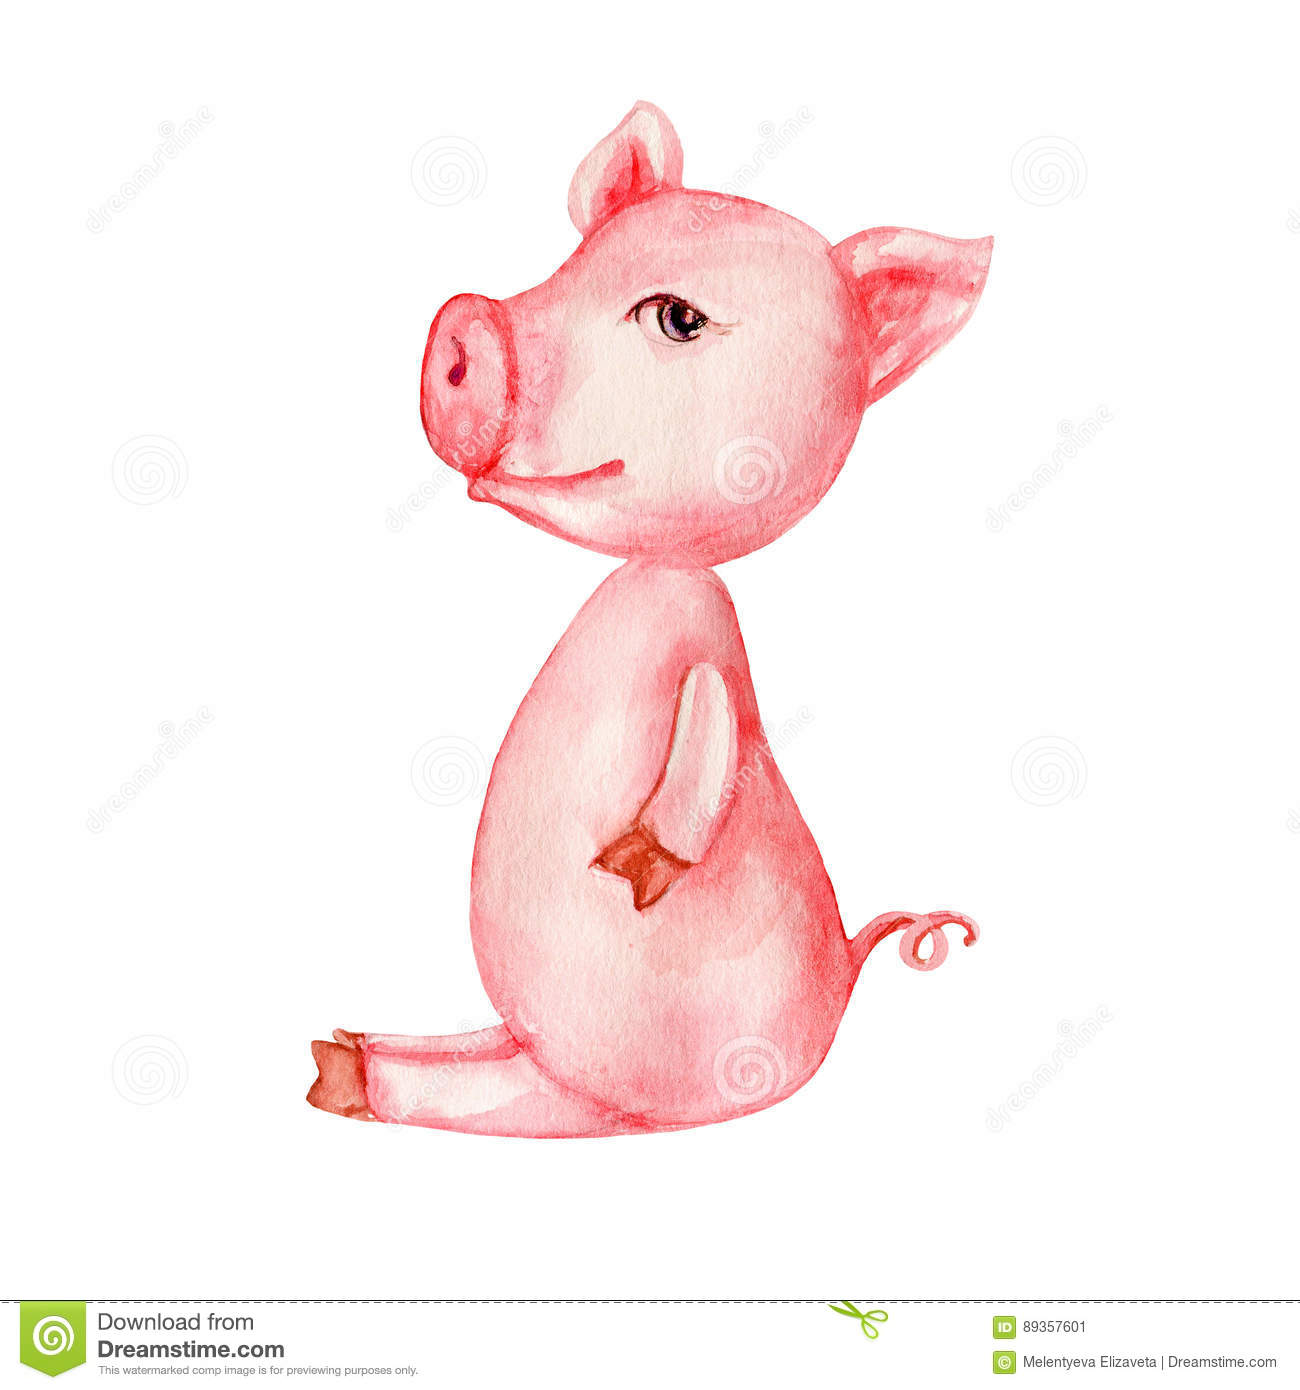 watercolor cartoon cute pink pig isolated on white background